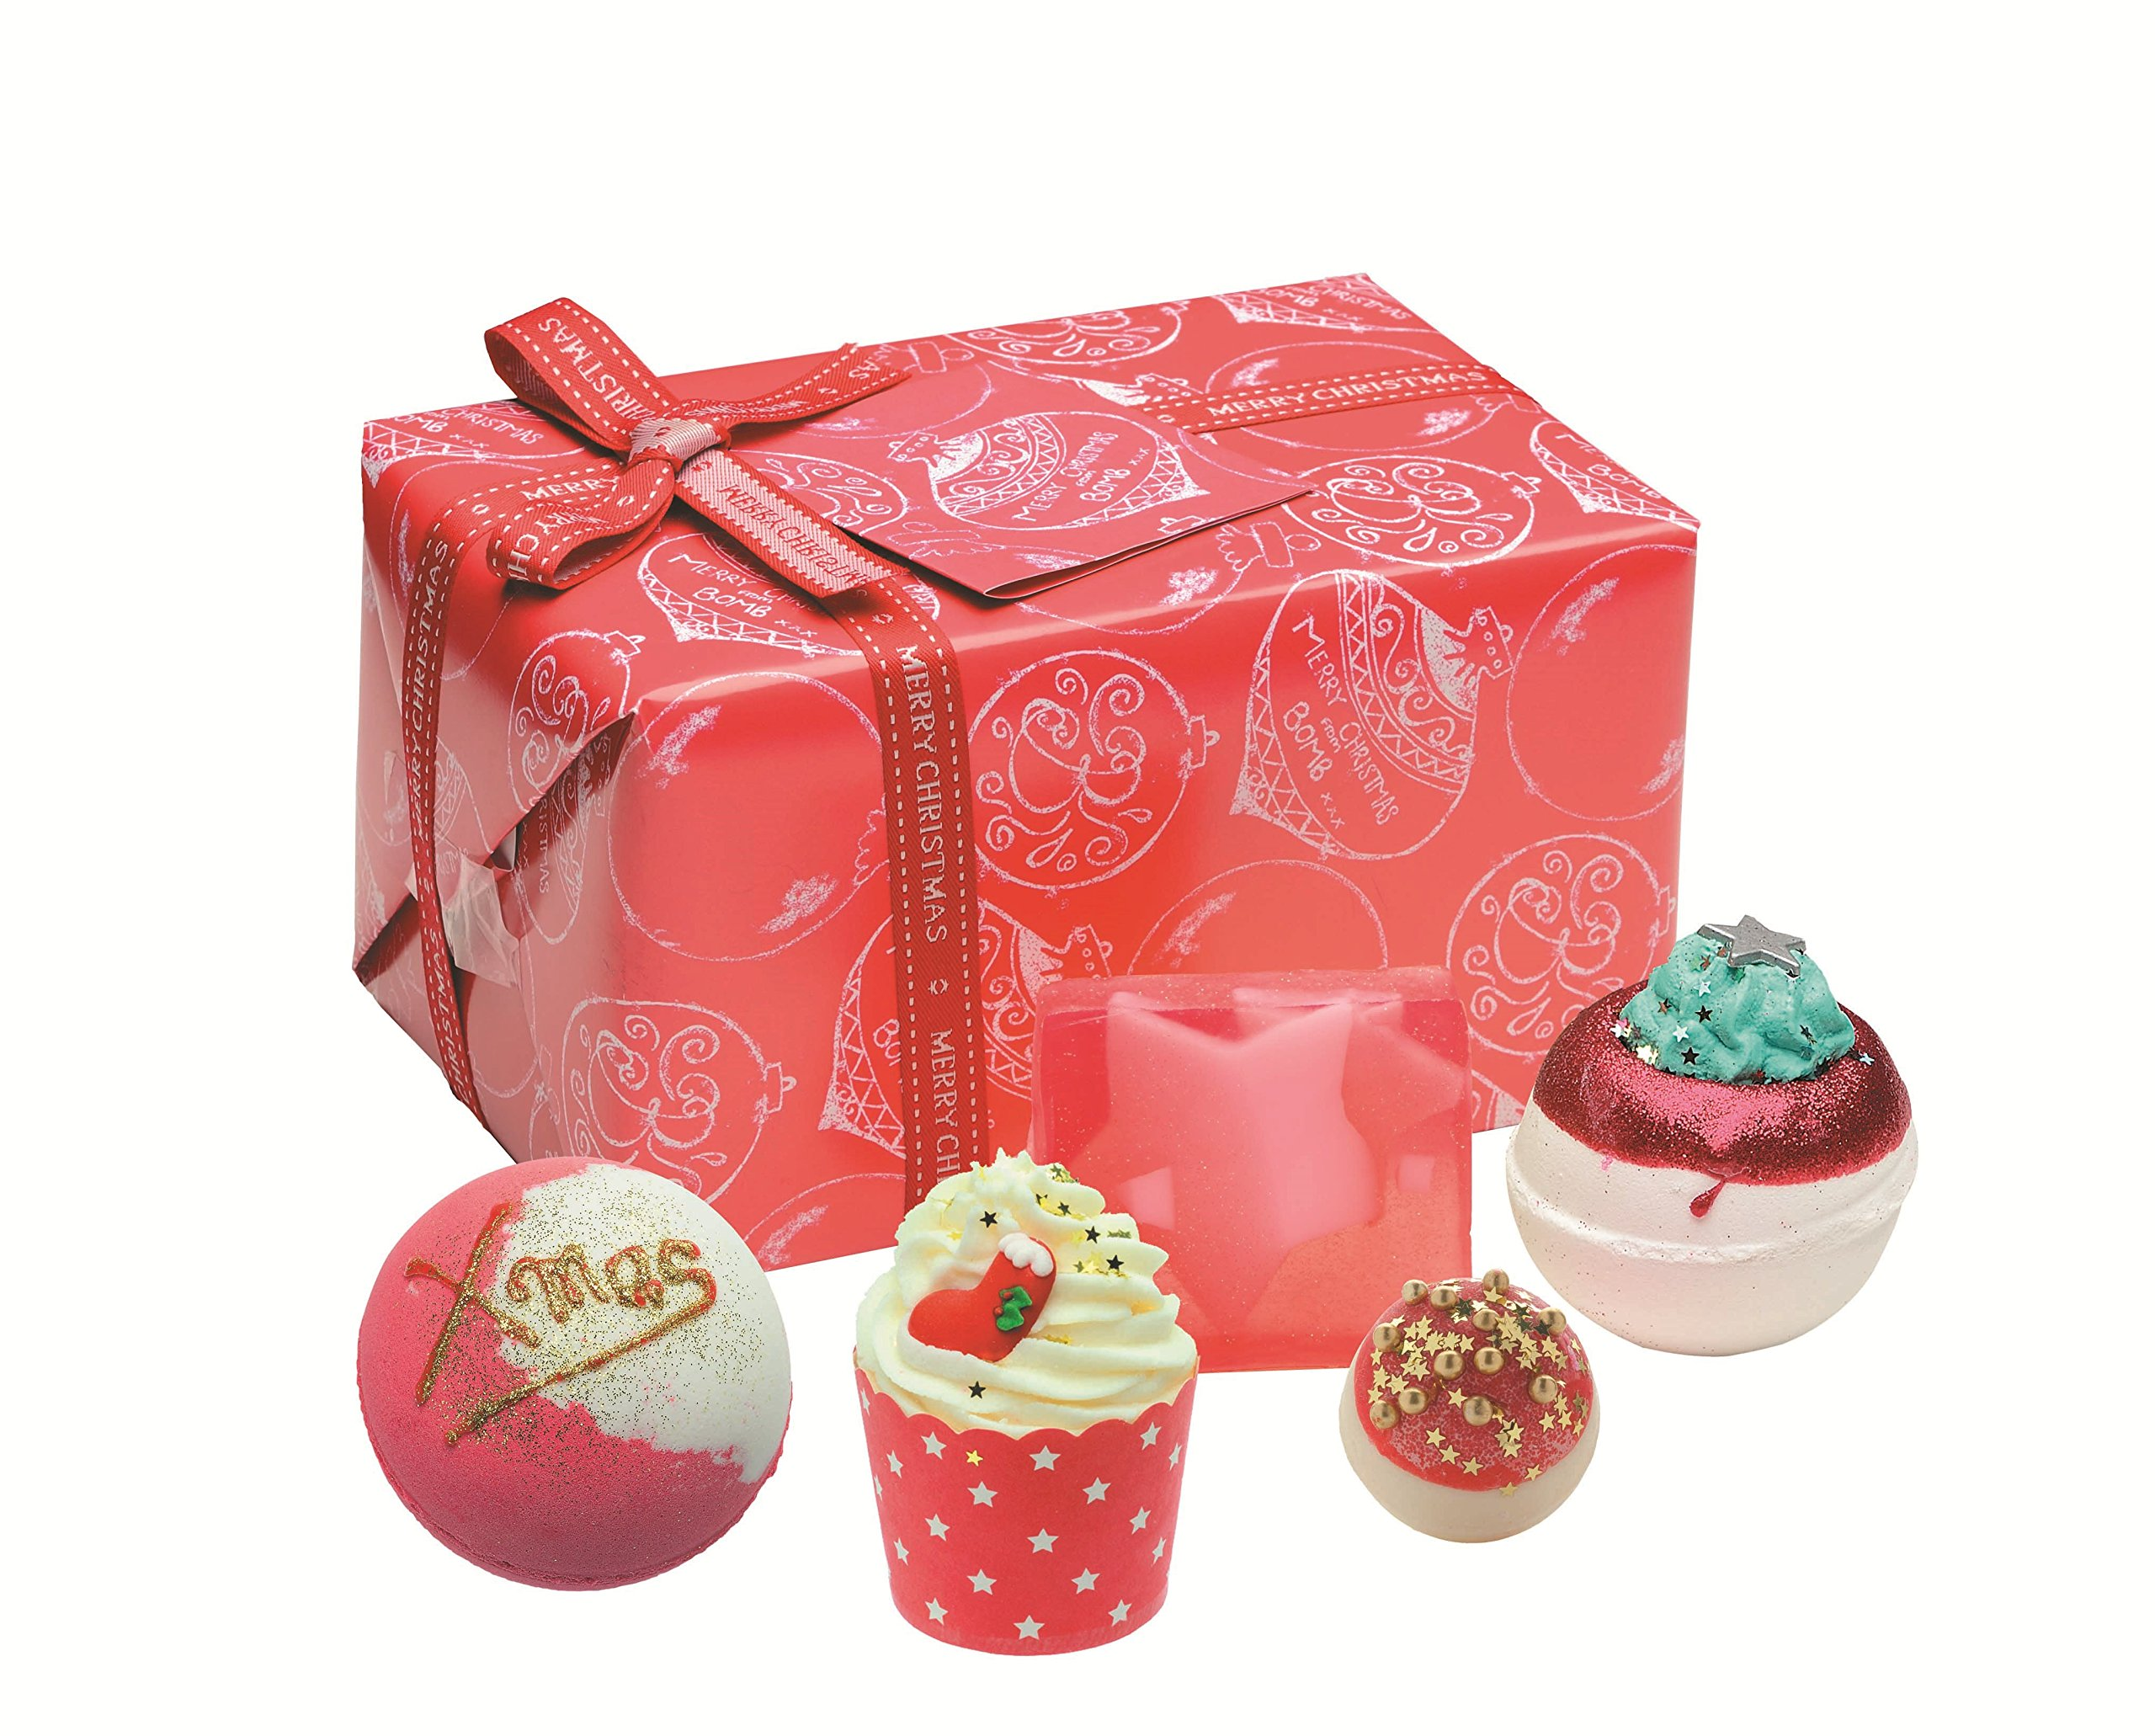 Bomb Cosmetics Santa Baby Handmade Wrapped Gift Pack [Contains 5-Pices], 560g